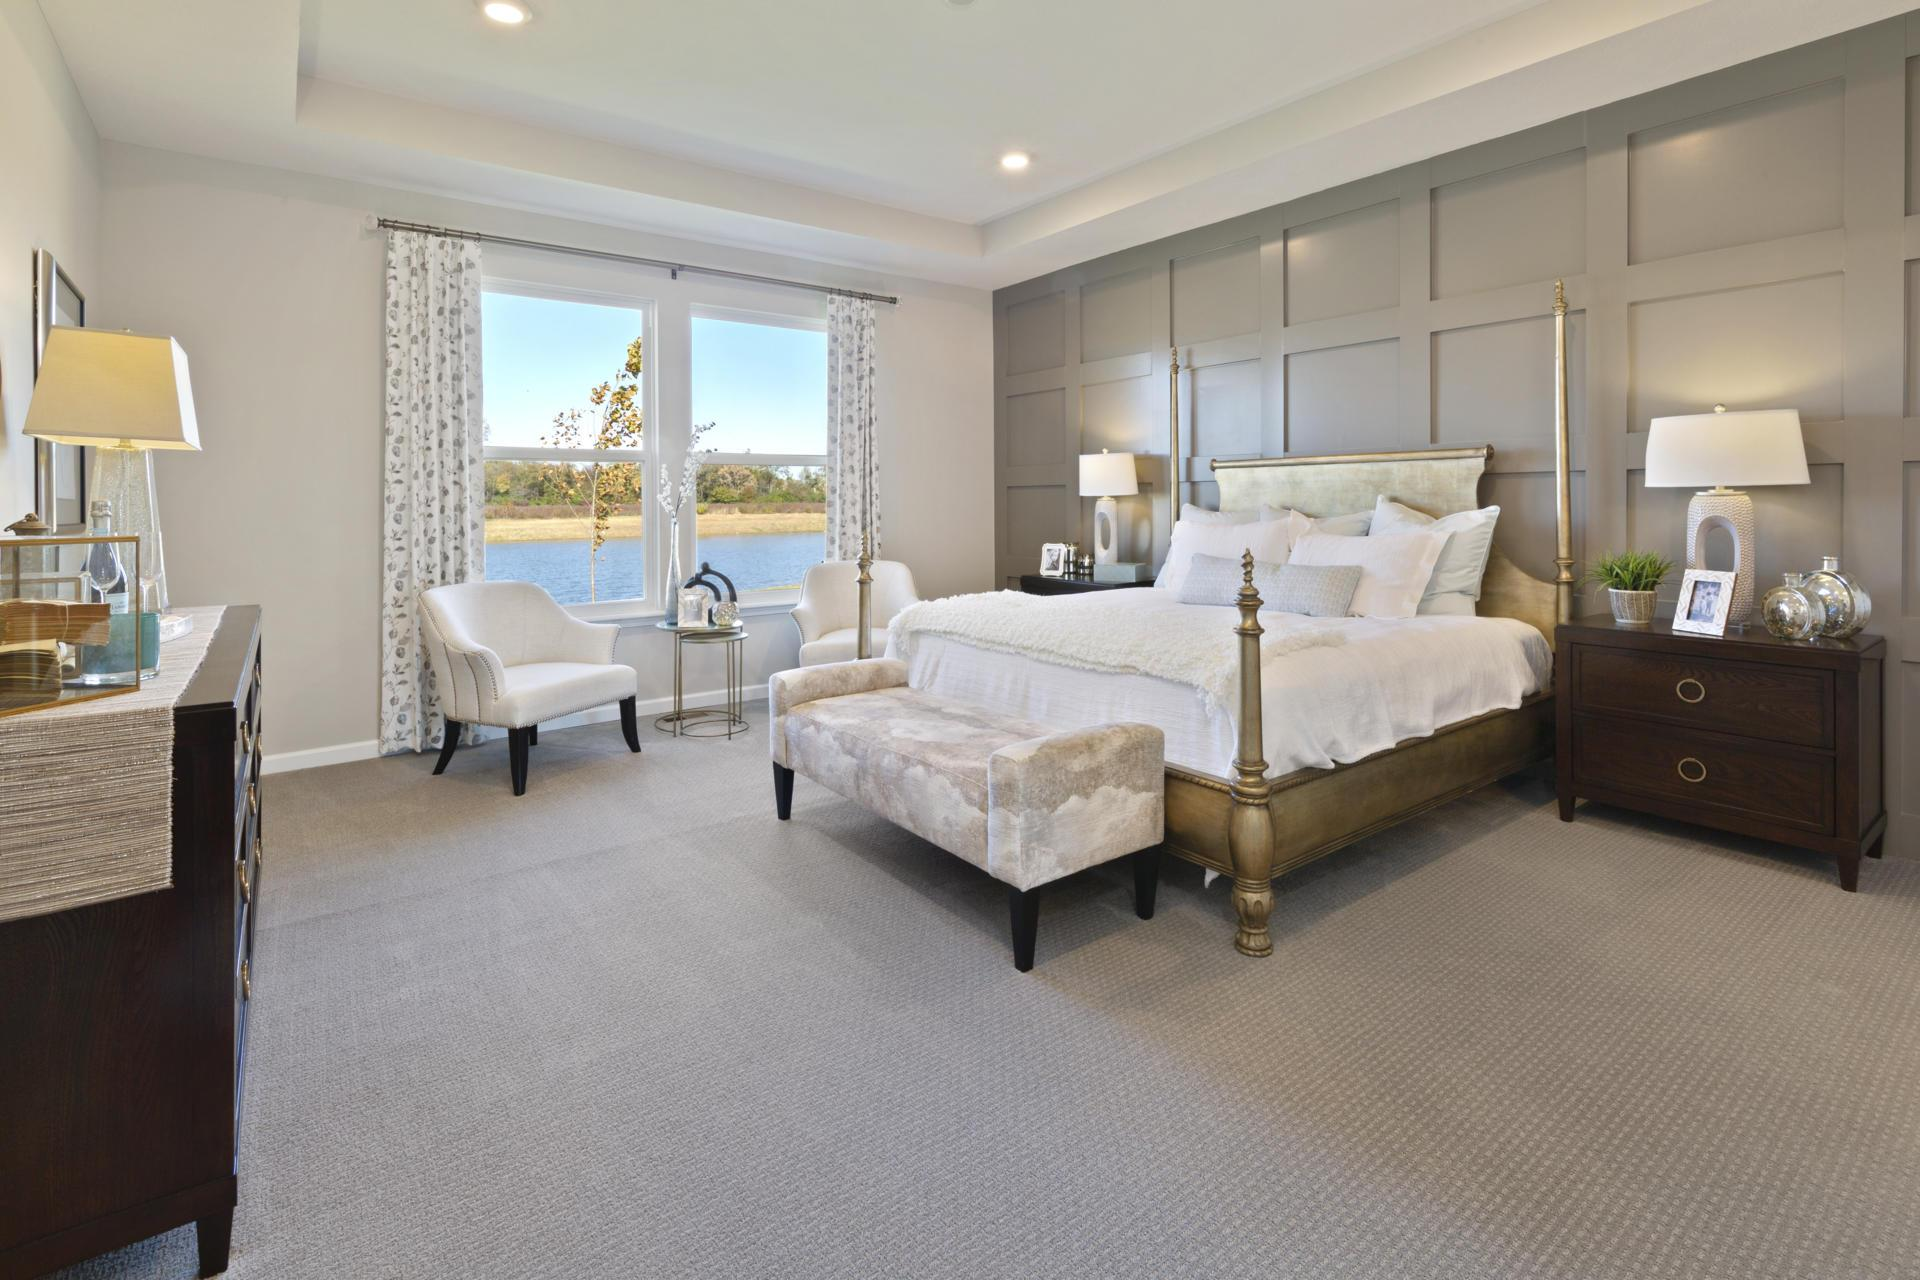 Bedroom featured in the Shelburn By Drees Homes in Indianapolis, IN